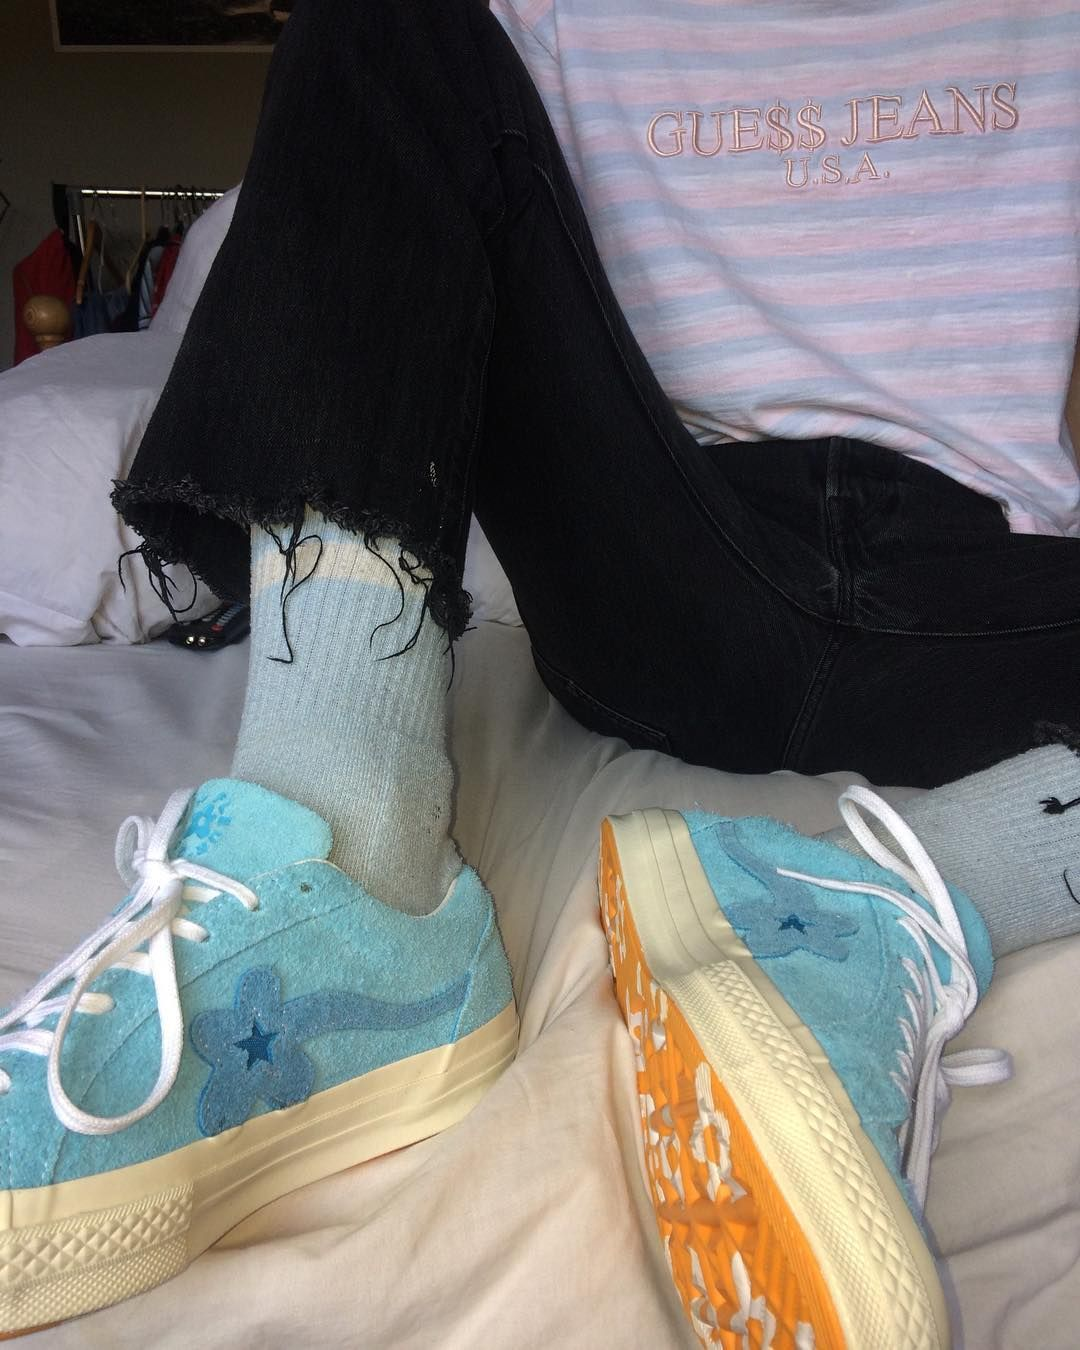 Bachelor Blue Tyler The Creator Golf Le Fleur Asap Rocky Guess Cotton Candy Tee Fashion Outfits With Converse Aesthetic Shoes